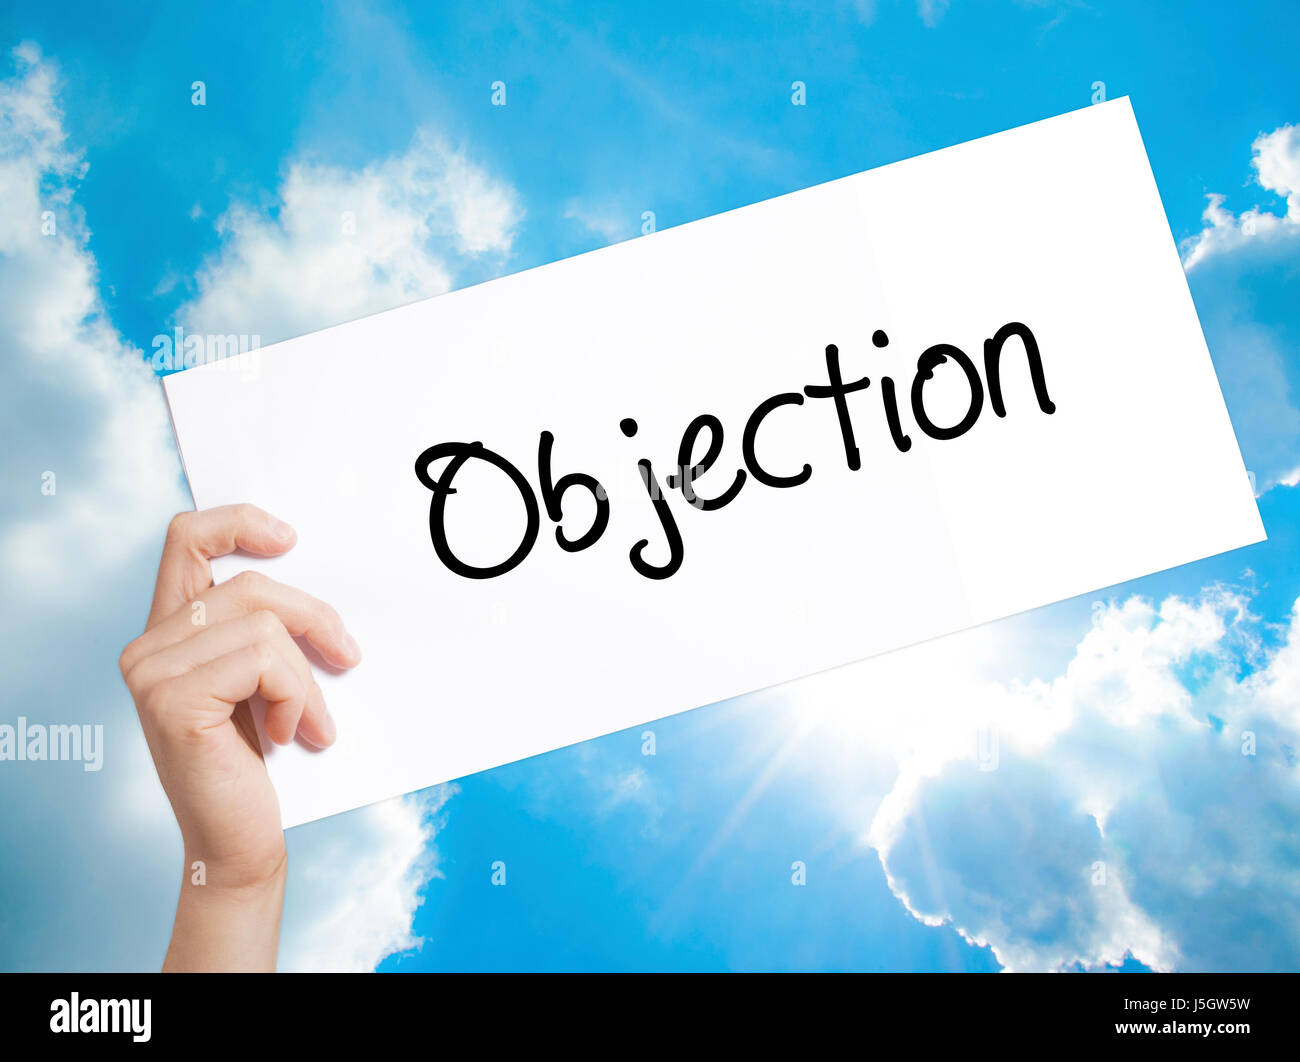 Objection Sign on white paper. Man Hand Holding Paper with text. Isolated on sky background.  Business concept. - Stock Image